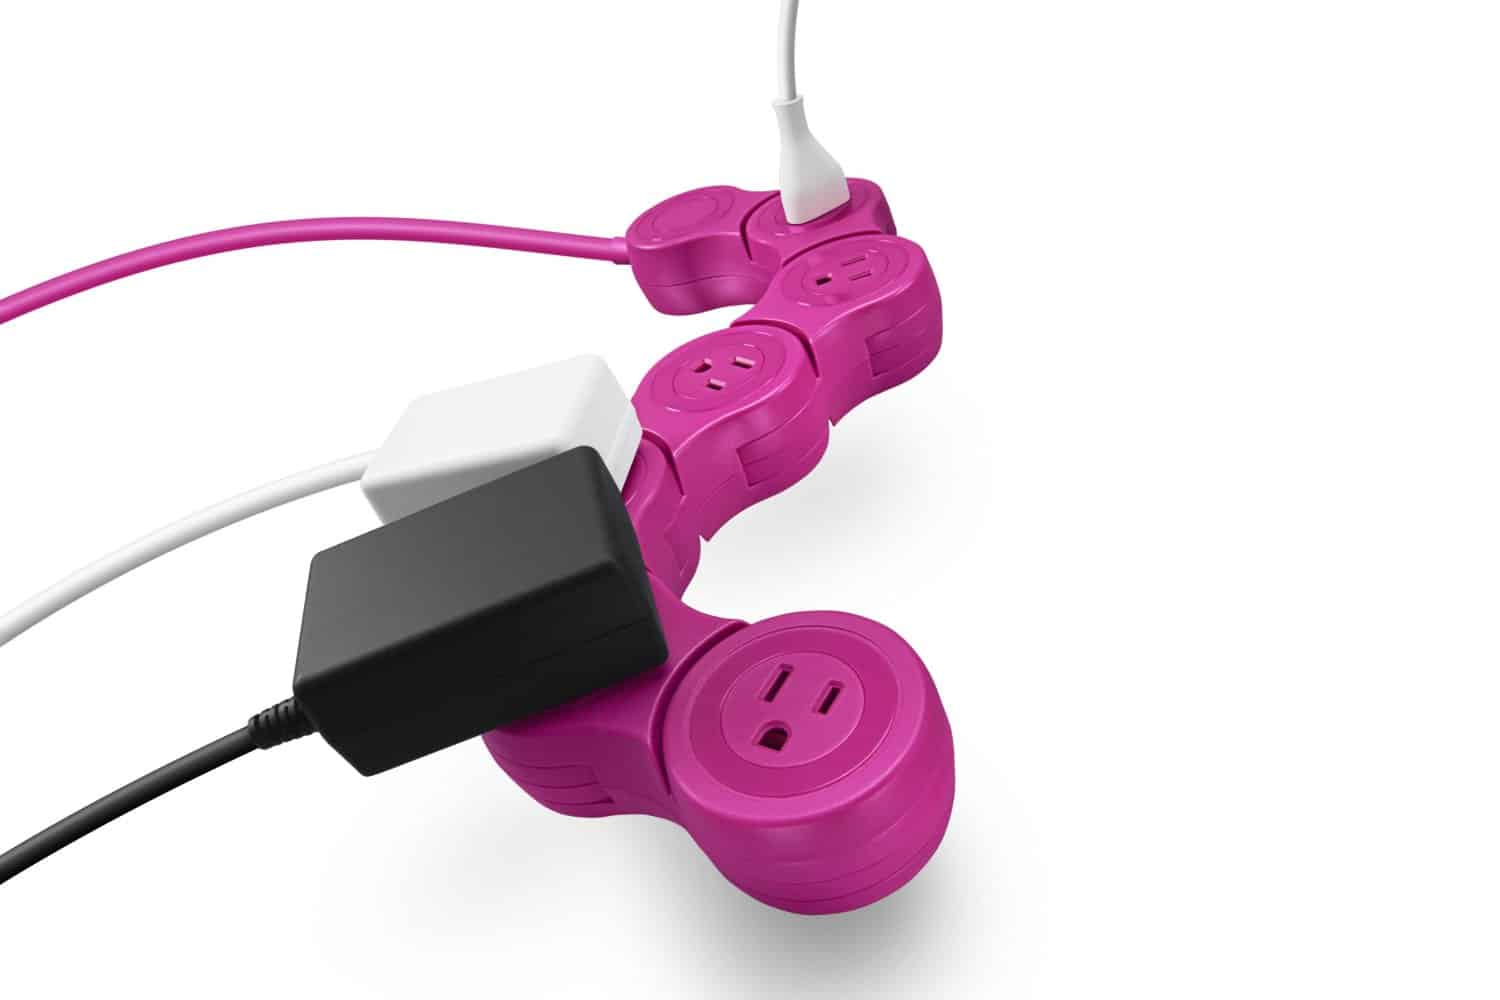 Quirky Pivot Power Bend that Power Strip to Fit All Plugs and Adaptors